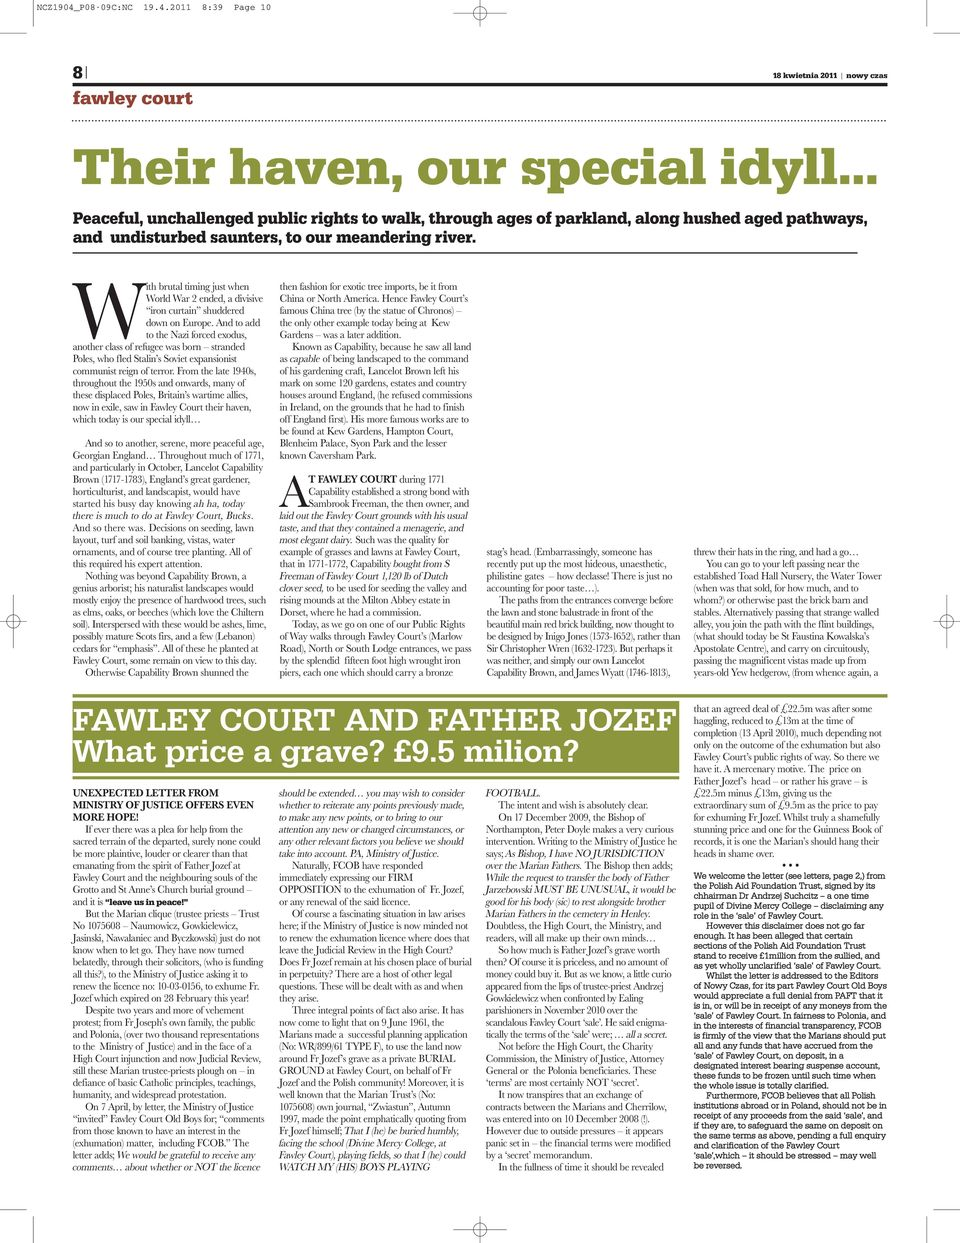 2011 8:39 Page 10 8 fawley court 18 kwietnia 2011 nowy czas Their haven, our special idyll Peaceful, unchallenged public rights to walk, through ages of parkland, along hushed aged pathways, and